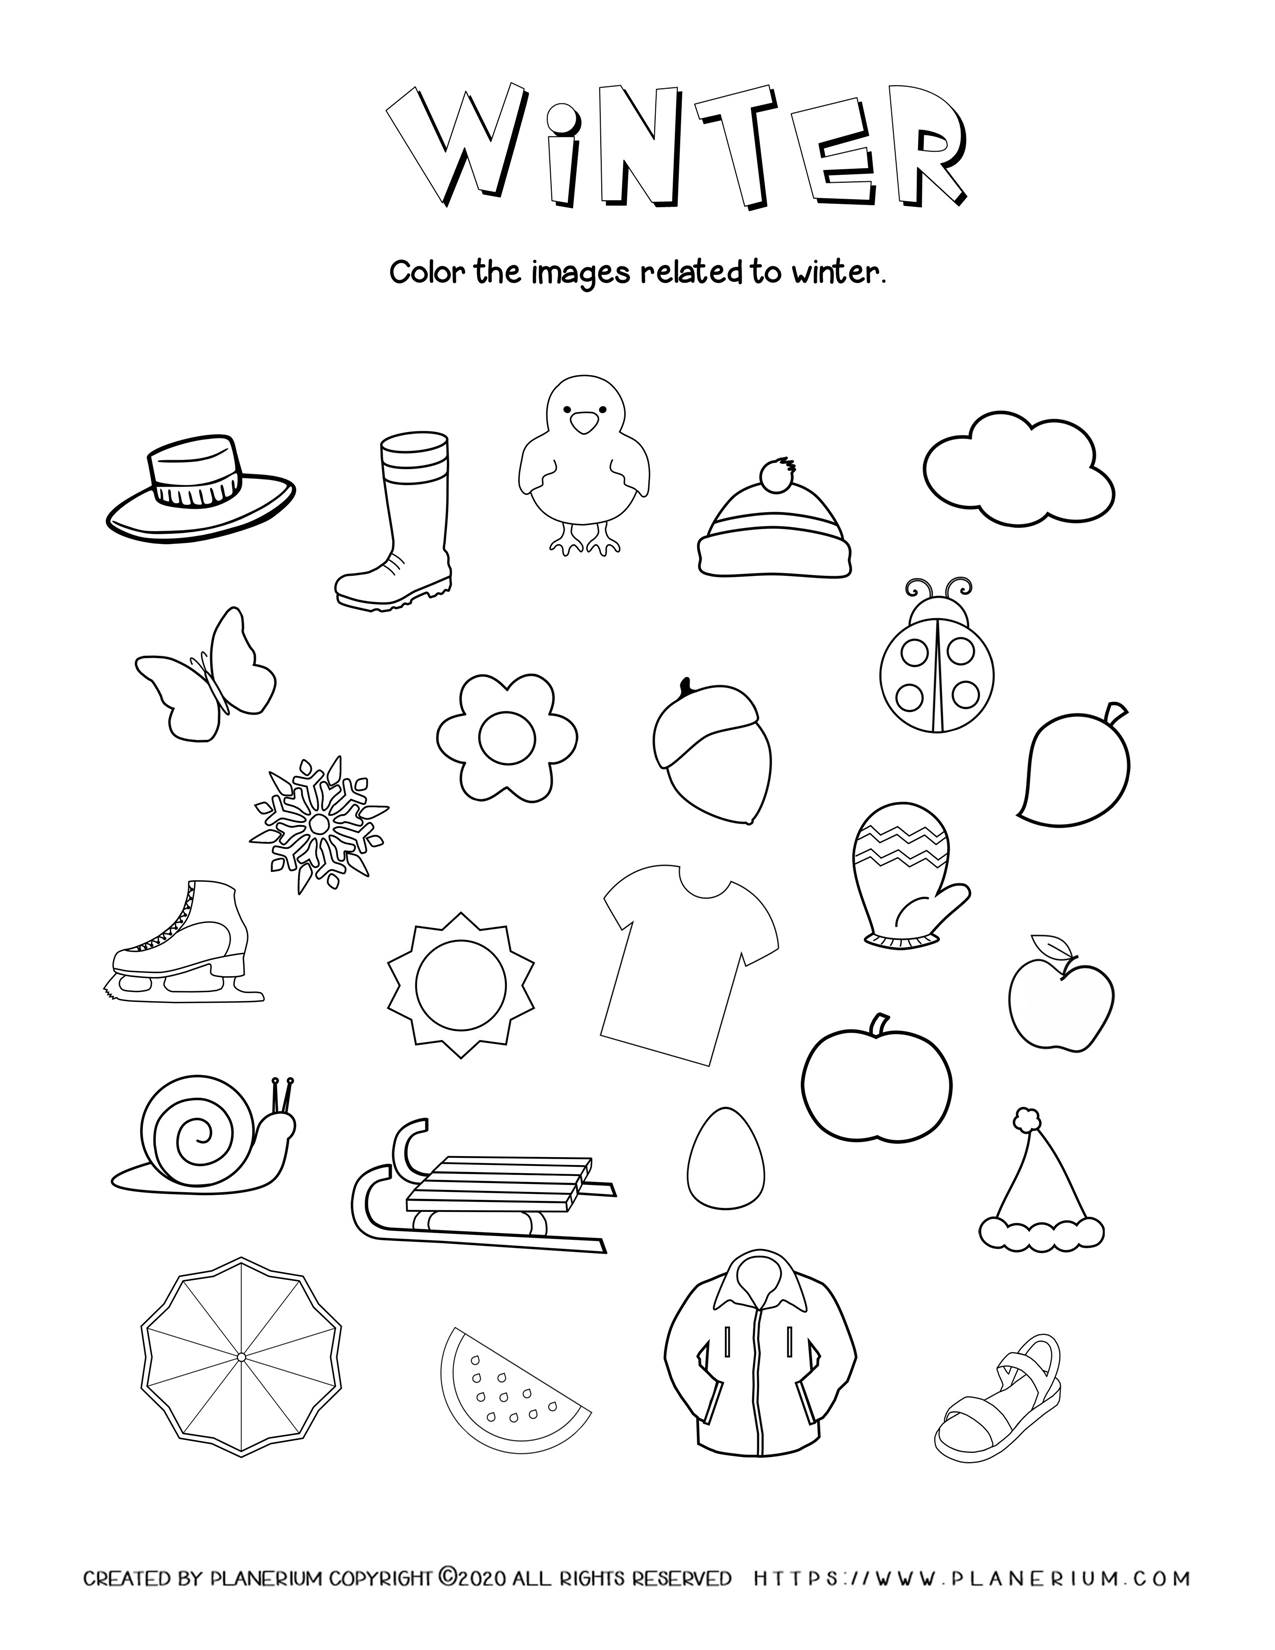 Coloring Winter Related Objects - Free Worksheet | Planerium